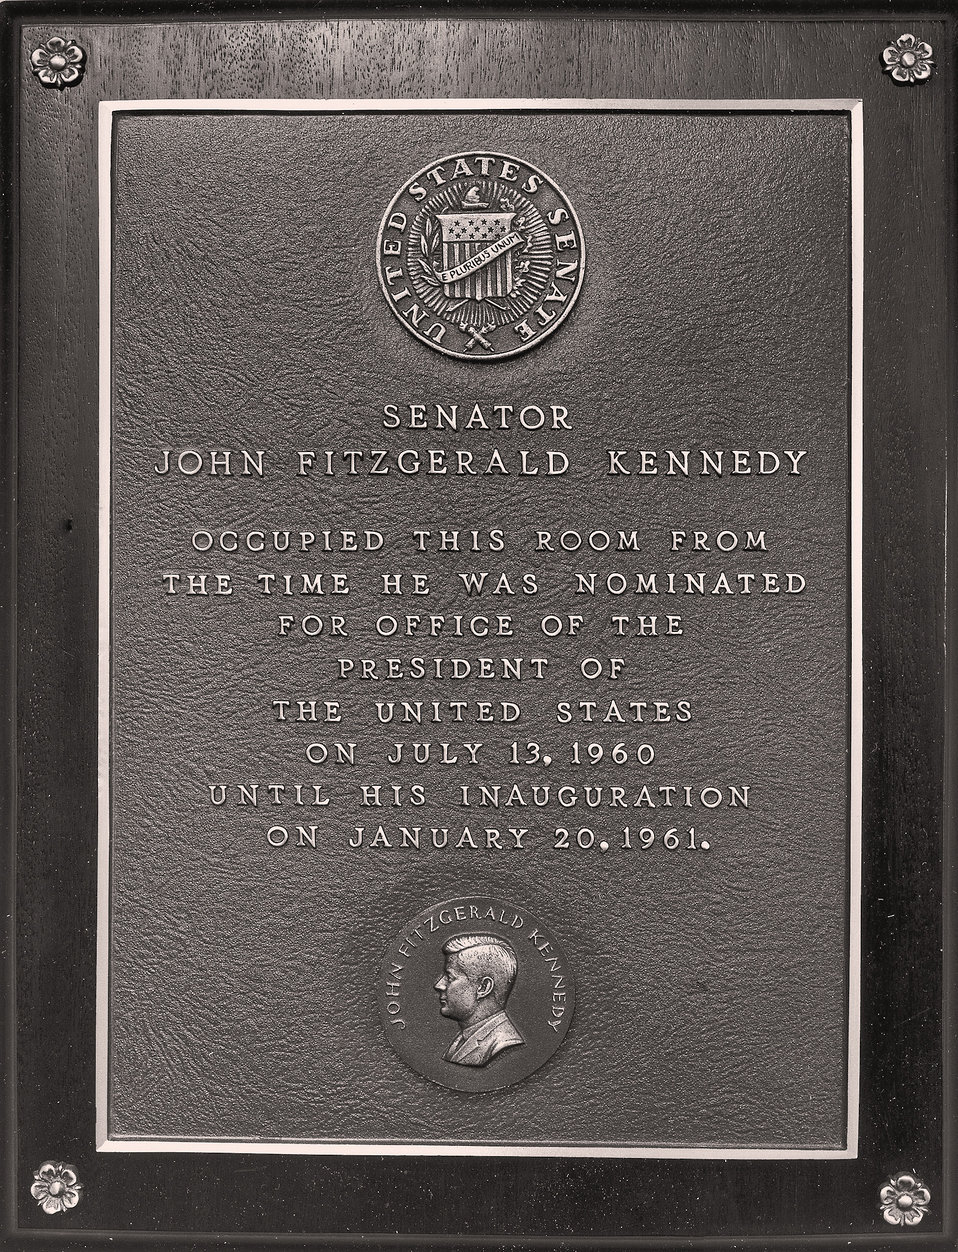 John F. Kennedy Room Plaque